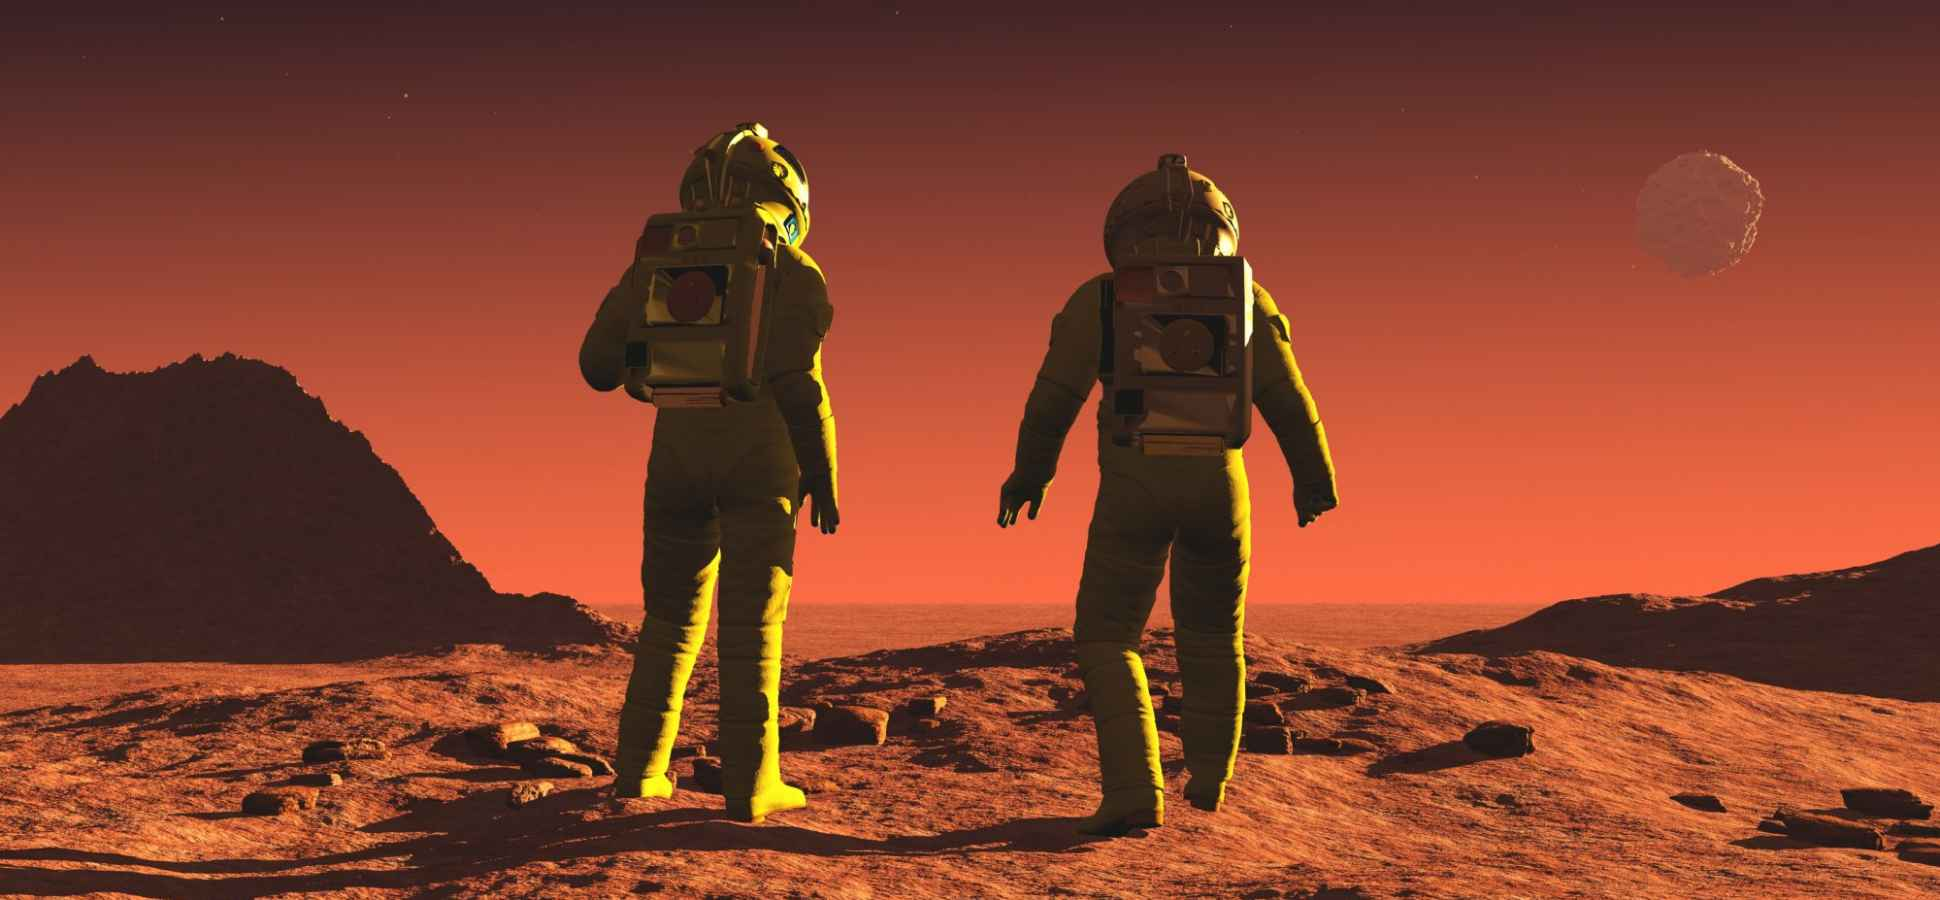 Elon Musk Just Published His Plan to Take Humans to Mars